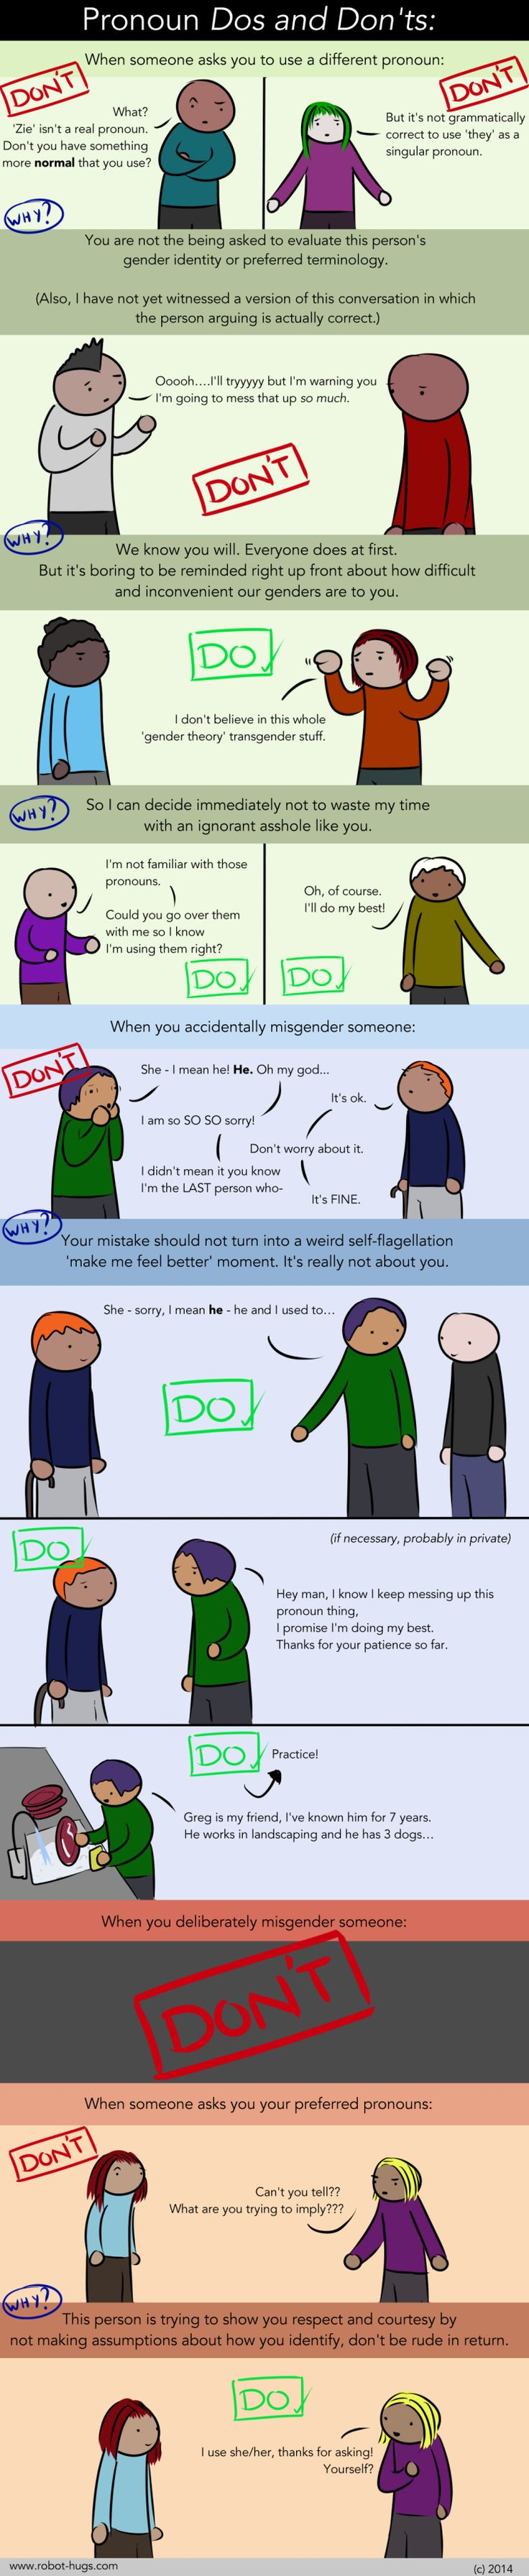 When You Don't Know Whether To Say 'He' Or 'She,' Here's A Handy Guide To Help…